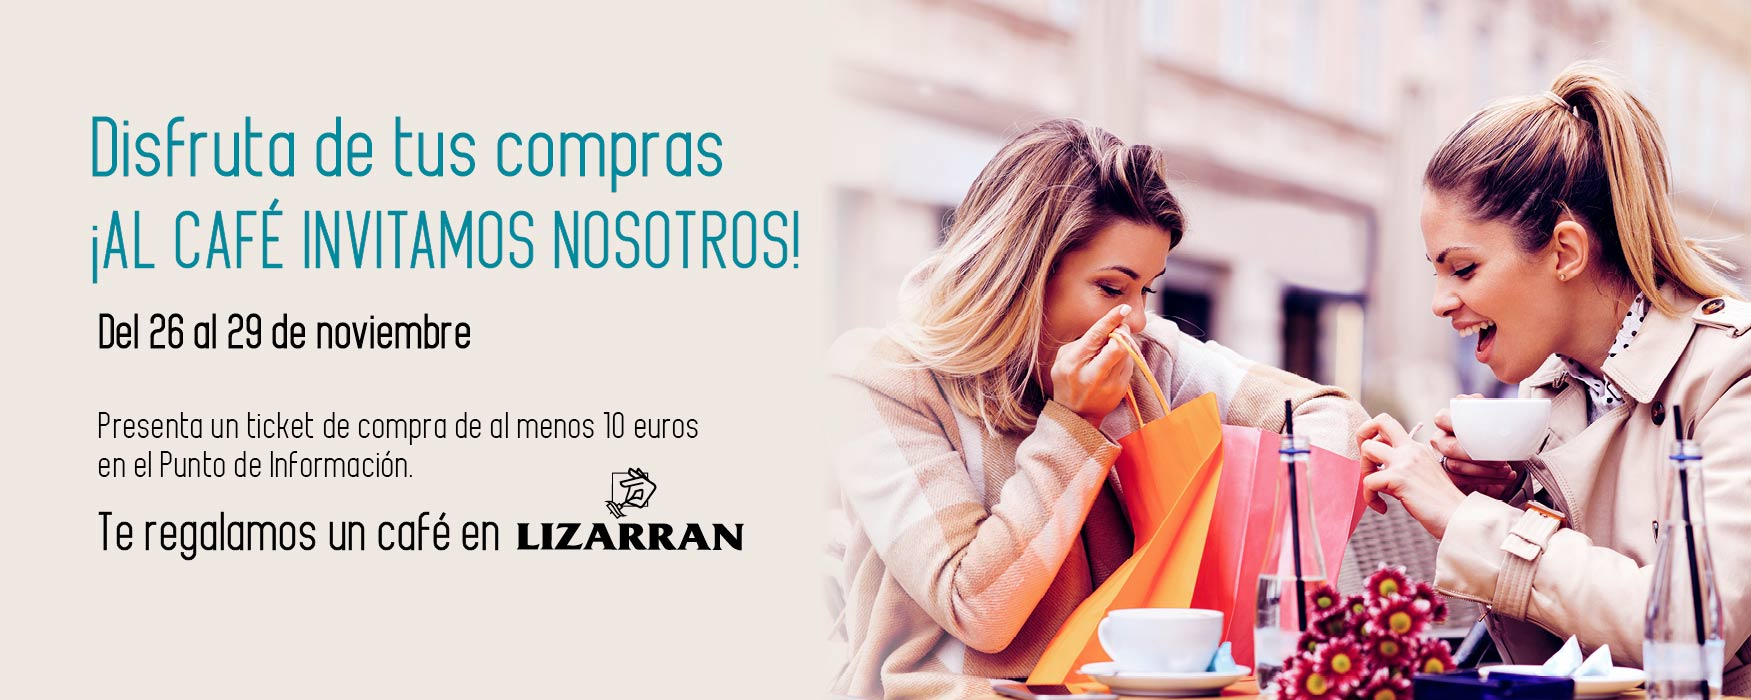 cafe-regalo-lizarran-web